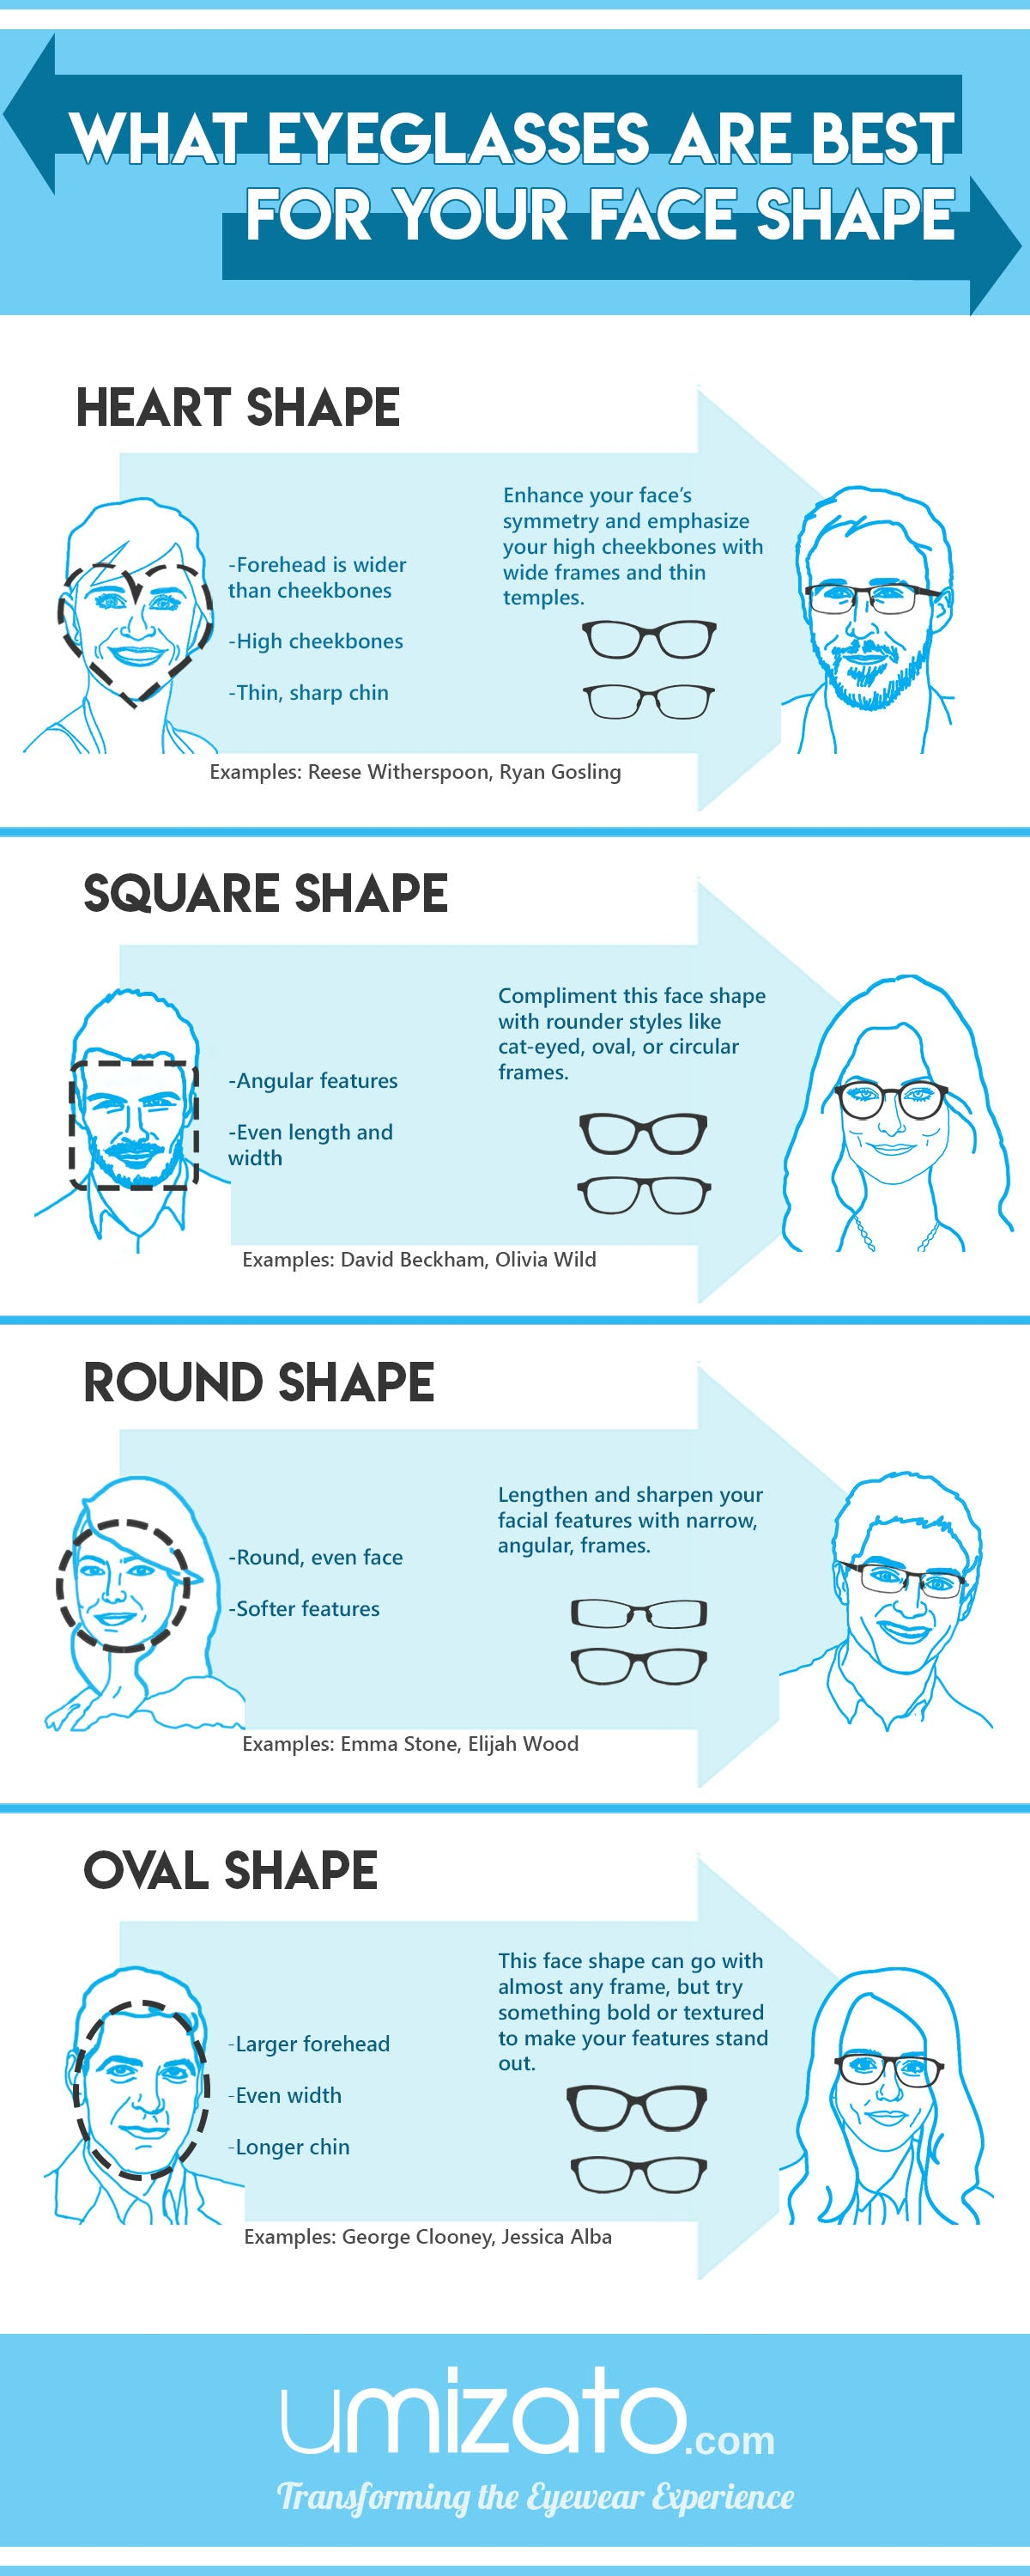 How To Find the Right Glasses For Your Face Shape